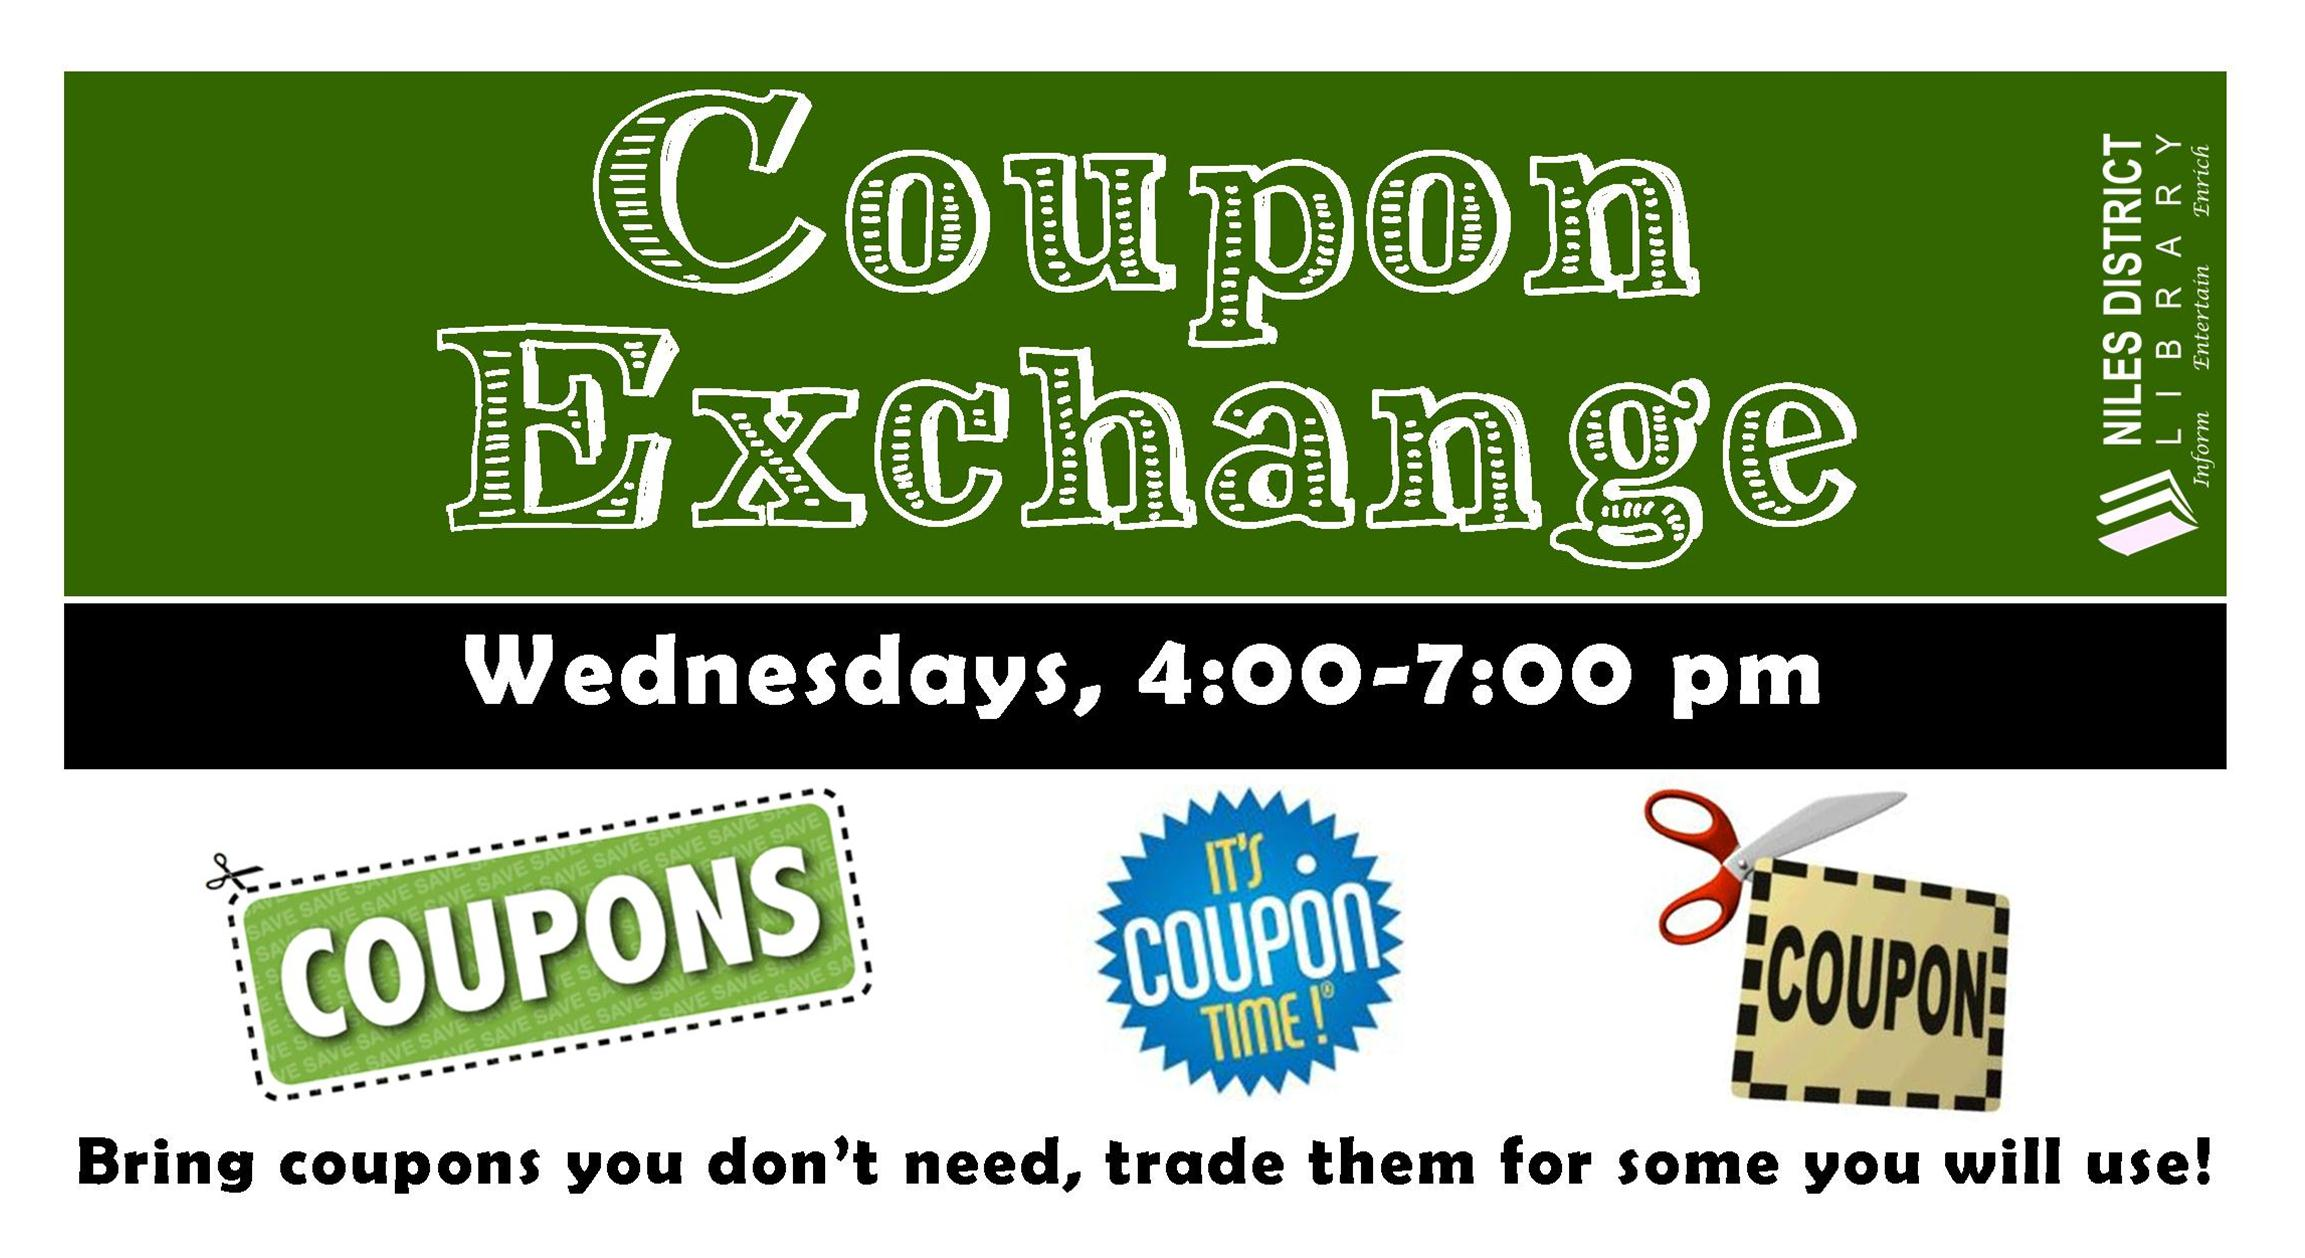 Aliexpress exchange coins for coupons